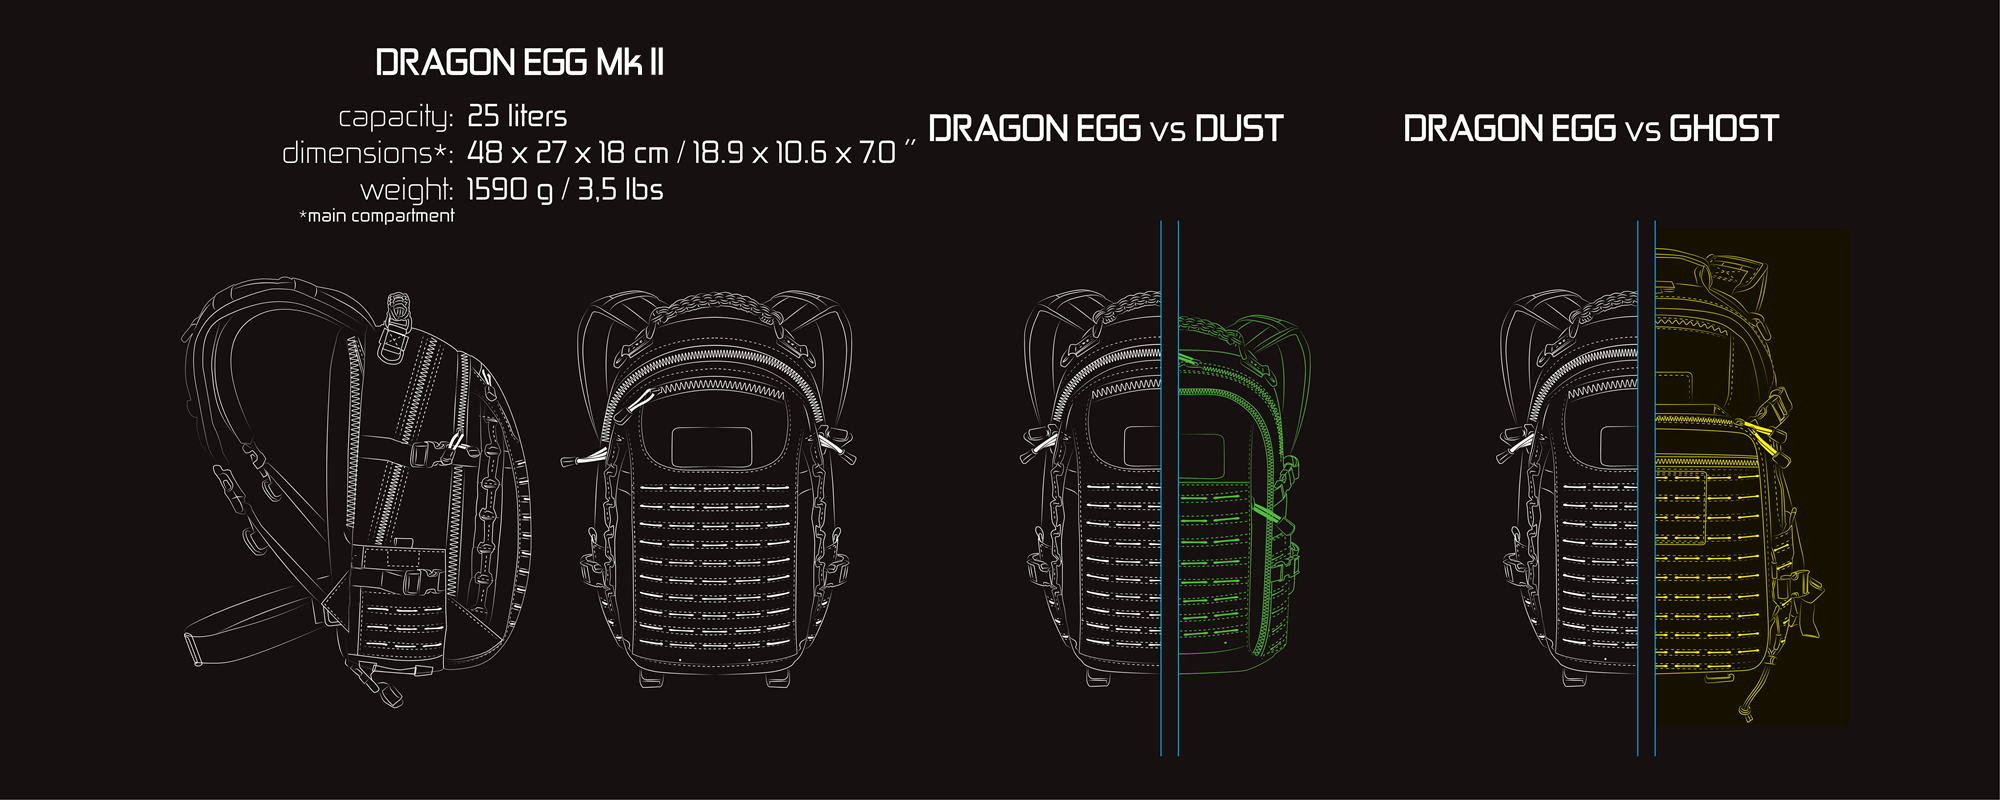 DRAGON_EGG_MKII_COMPARE_2000_800.png